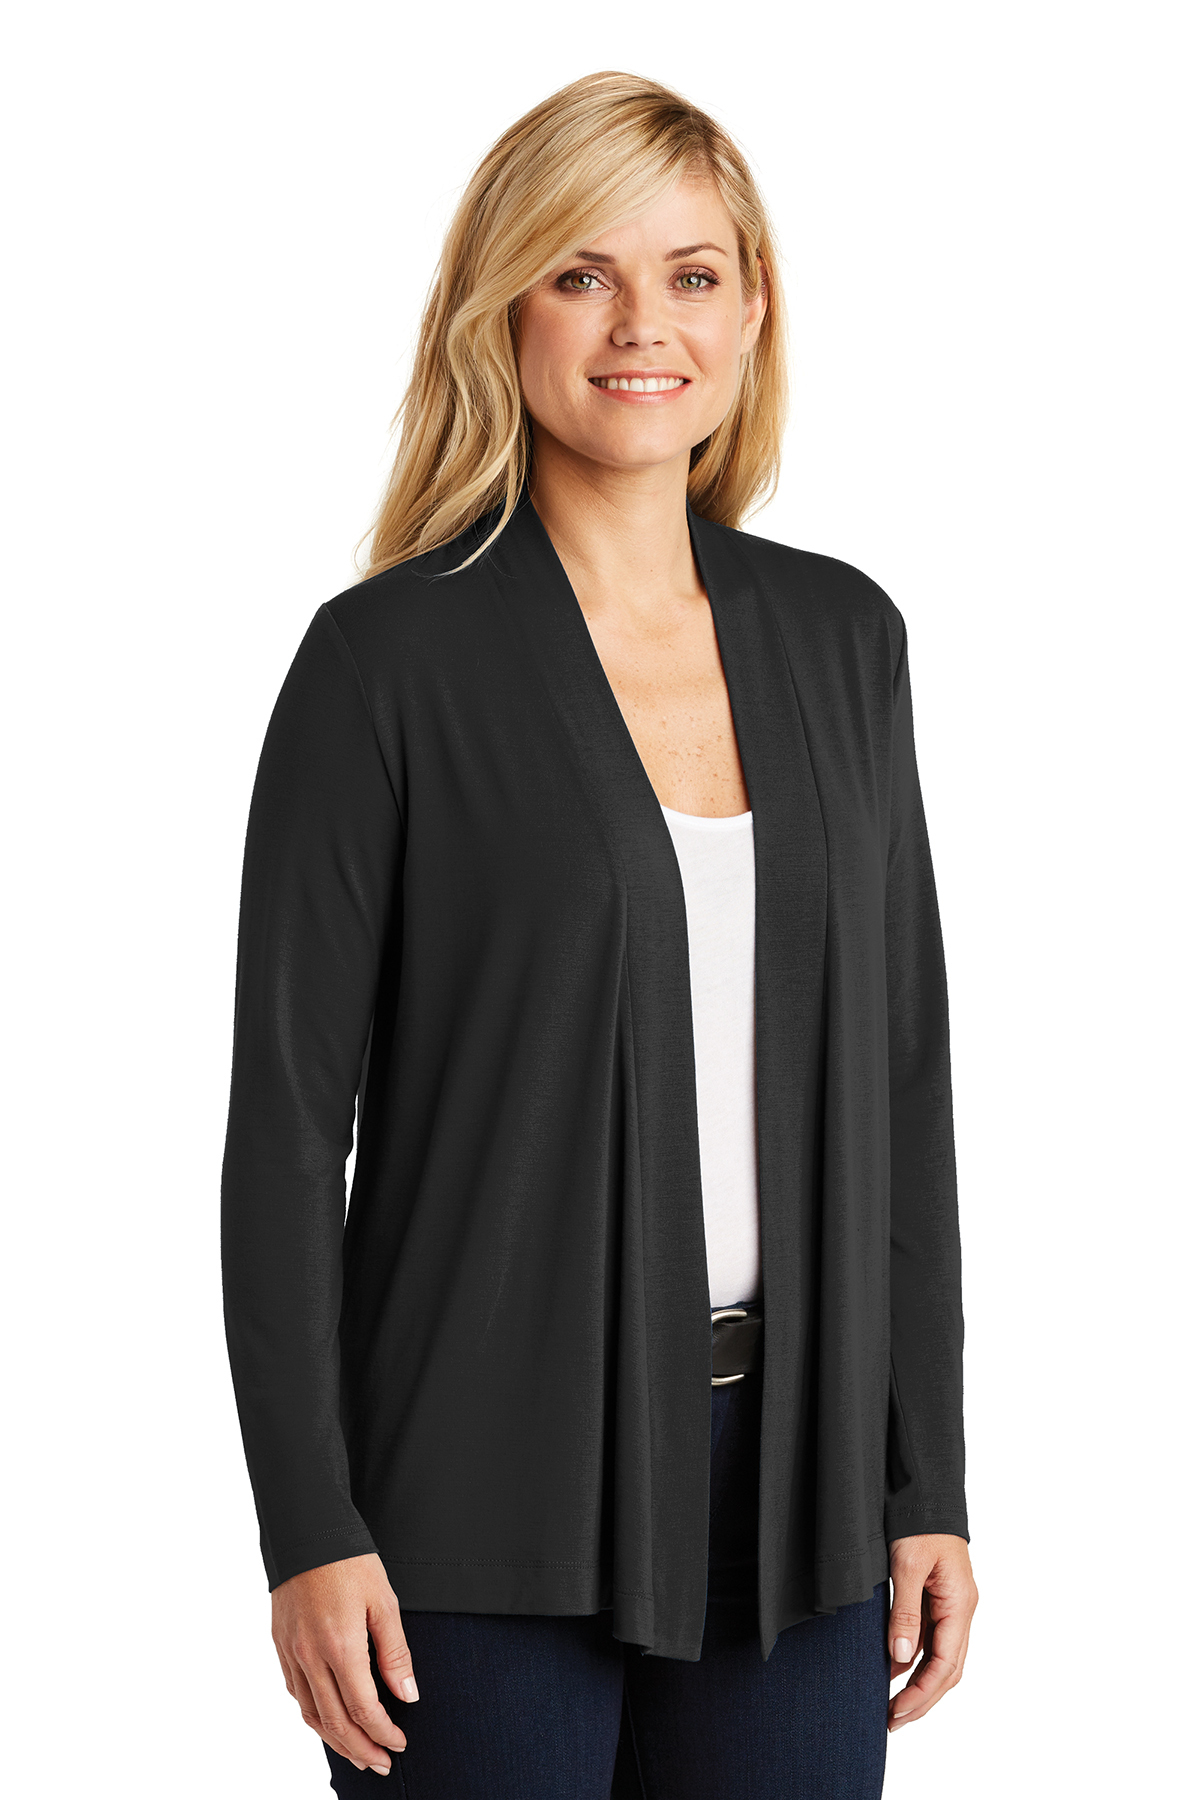 d32e98d55 ... Port Authority® Ladies Concept Knit Cardigan. A maximum of 8 logos have  been uploaded. Please remove a logo from My Logos to continue